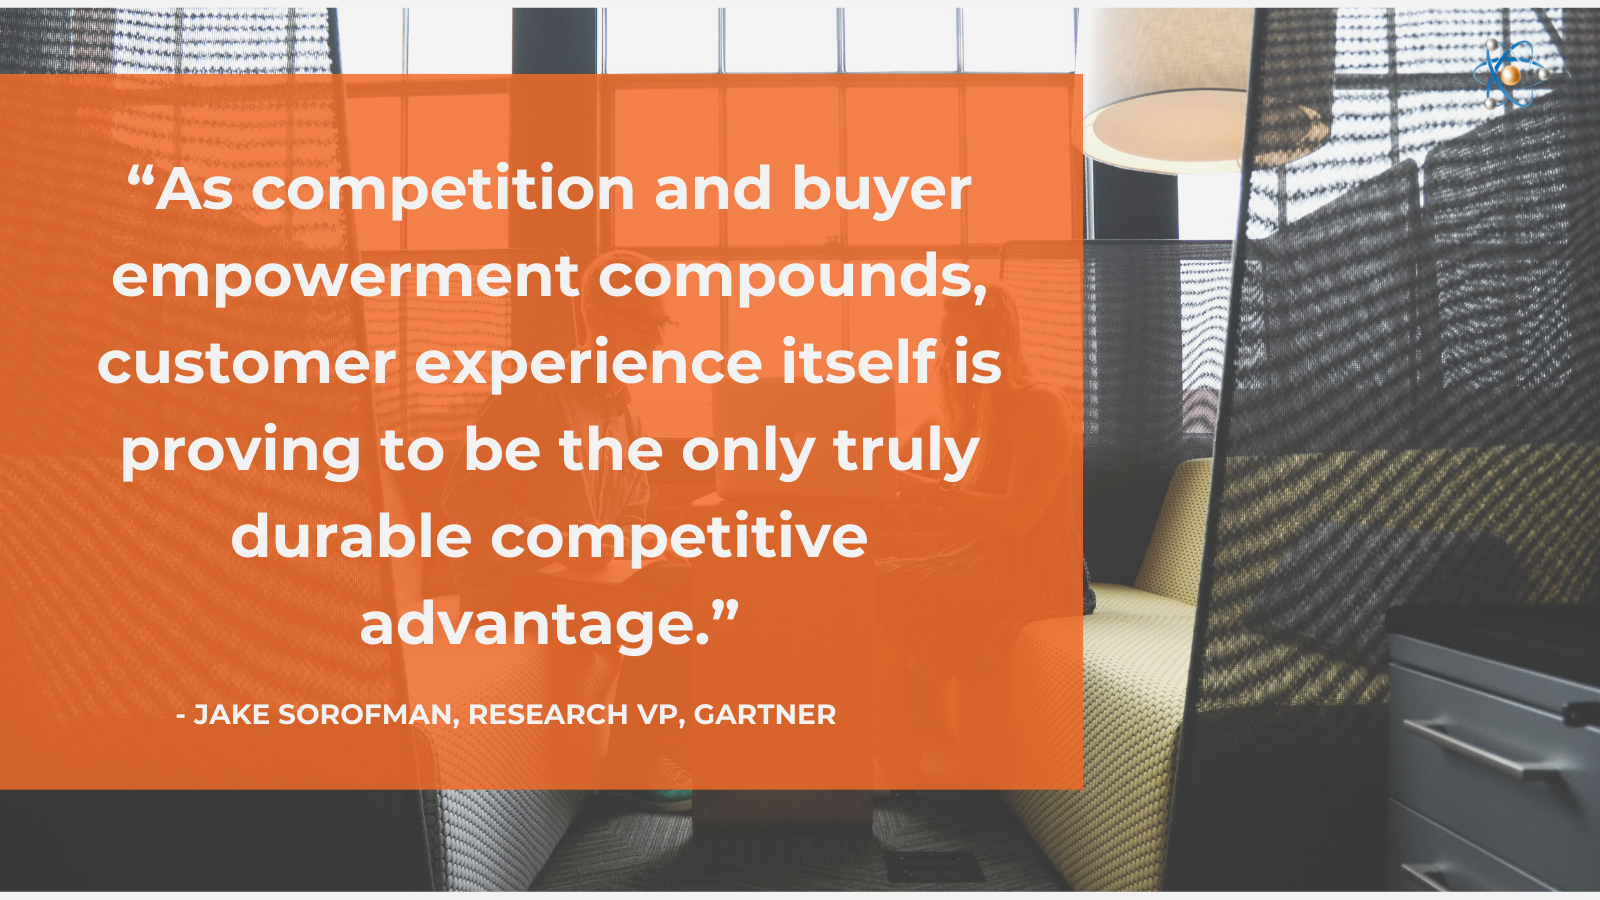 competition buyer empowerment compounds customer experience competititve advantage gartner customer success quote